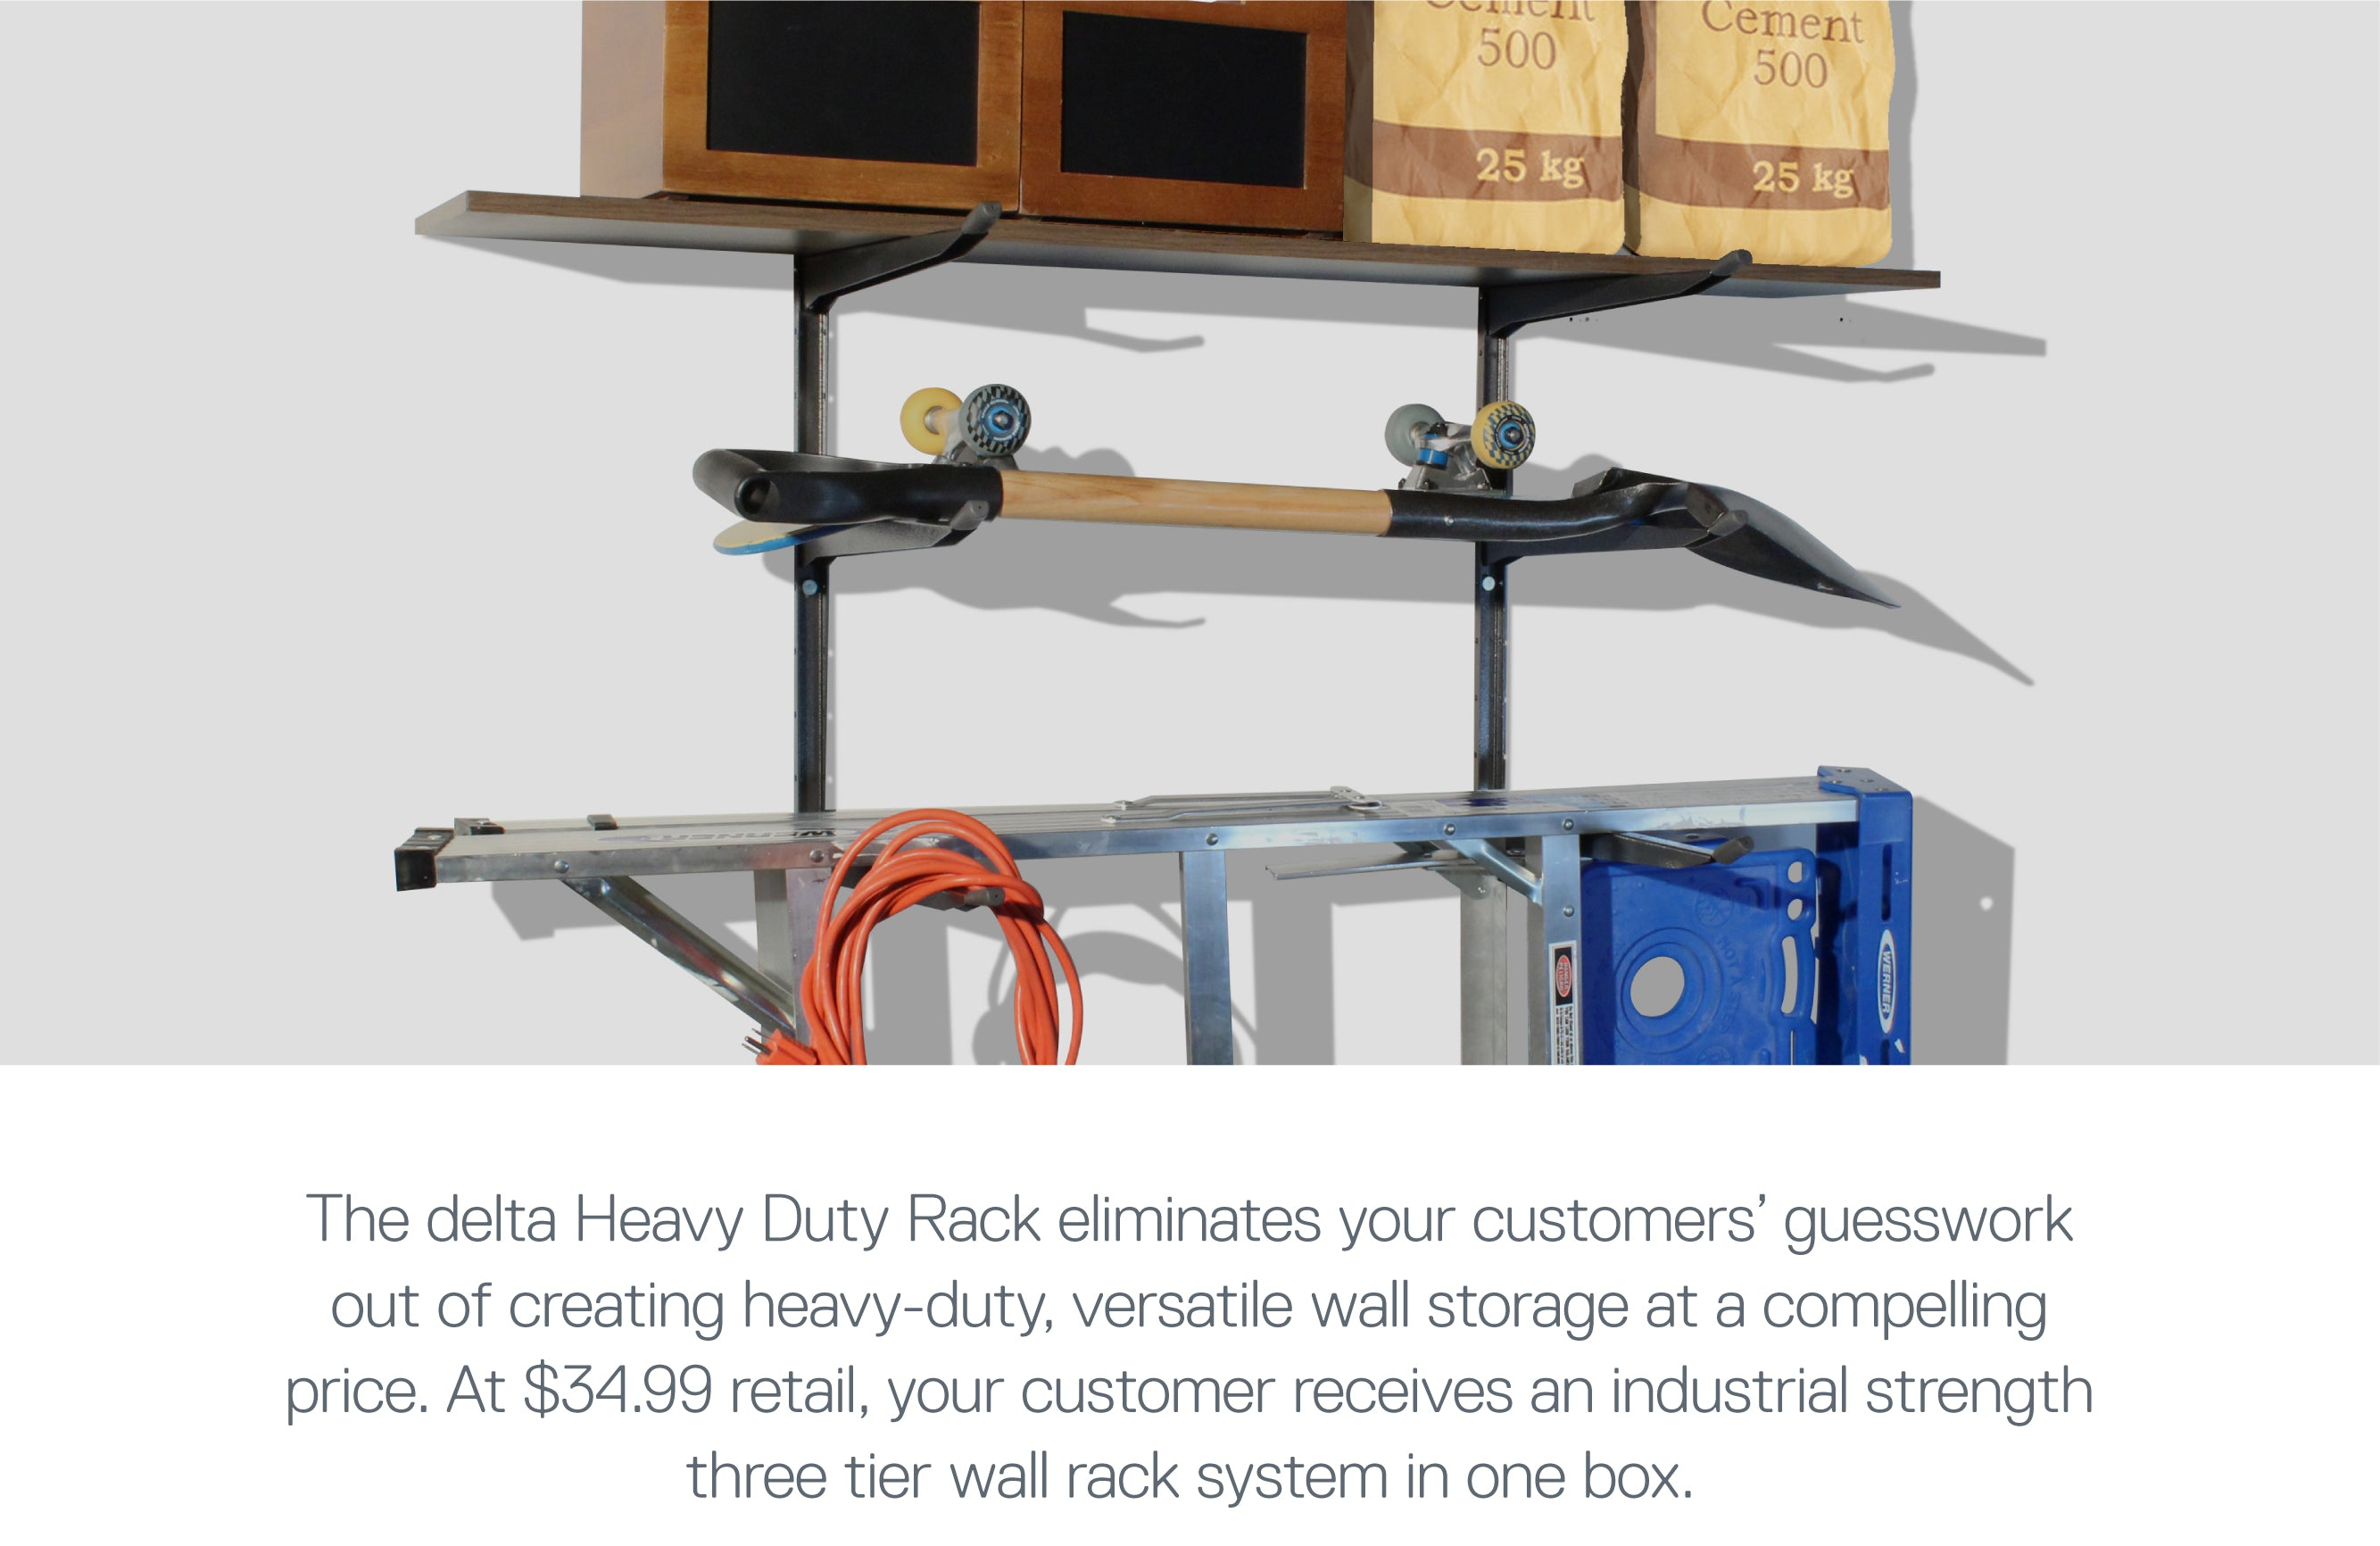 Heavy Duty Wall Rack Lifestyle Image